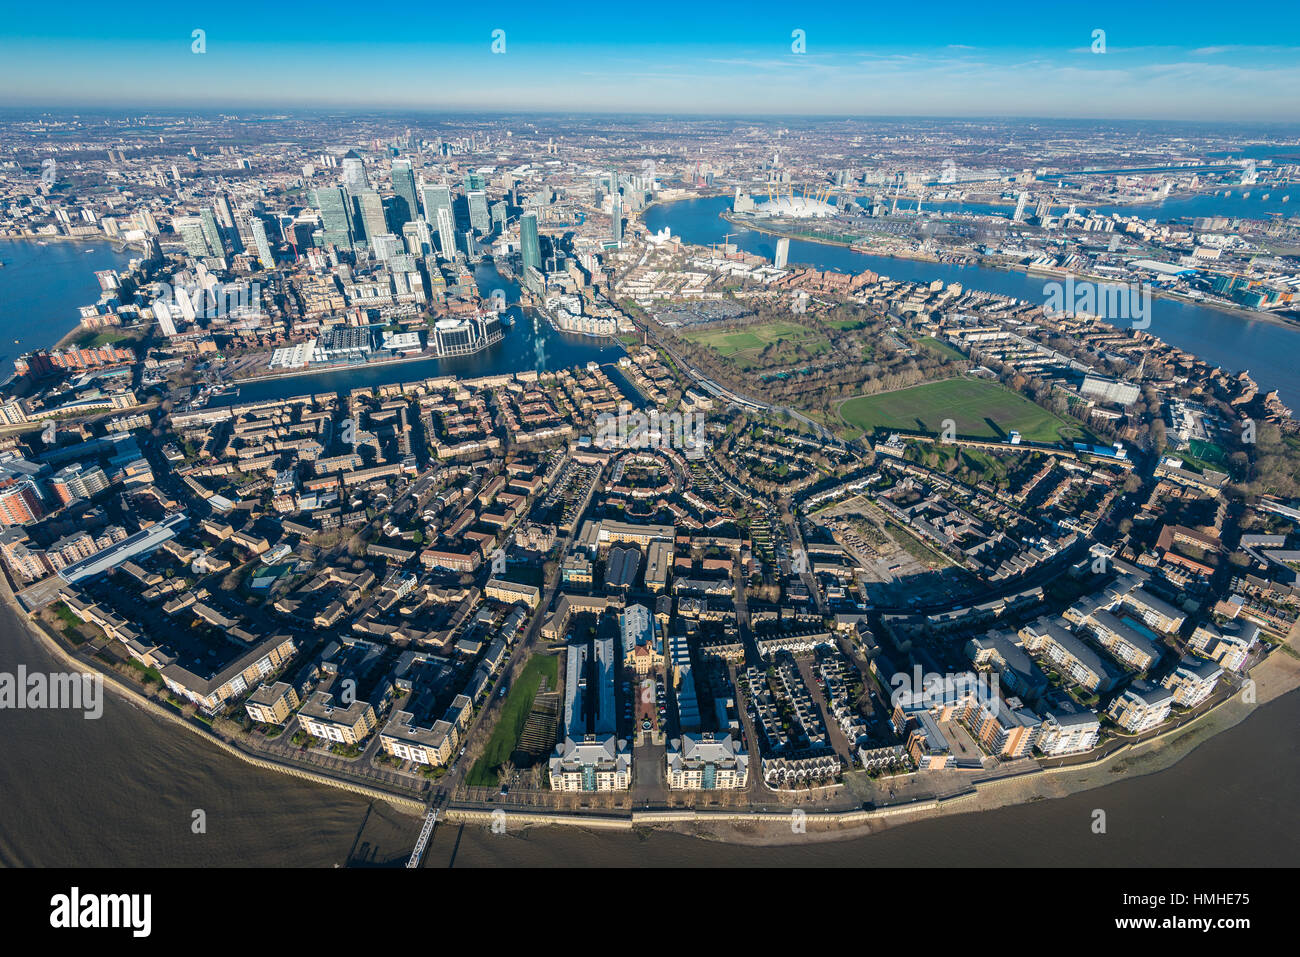 london von oben bilder von canary wharf in london vom helikopter aus gesehen stockfoto bild. Black Bedroom Furniture Sets. Home Design Ideas